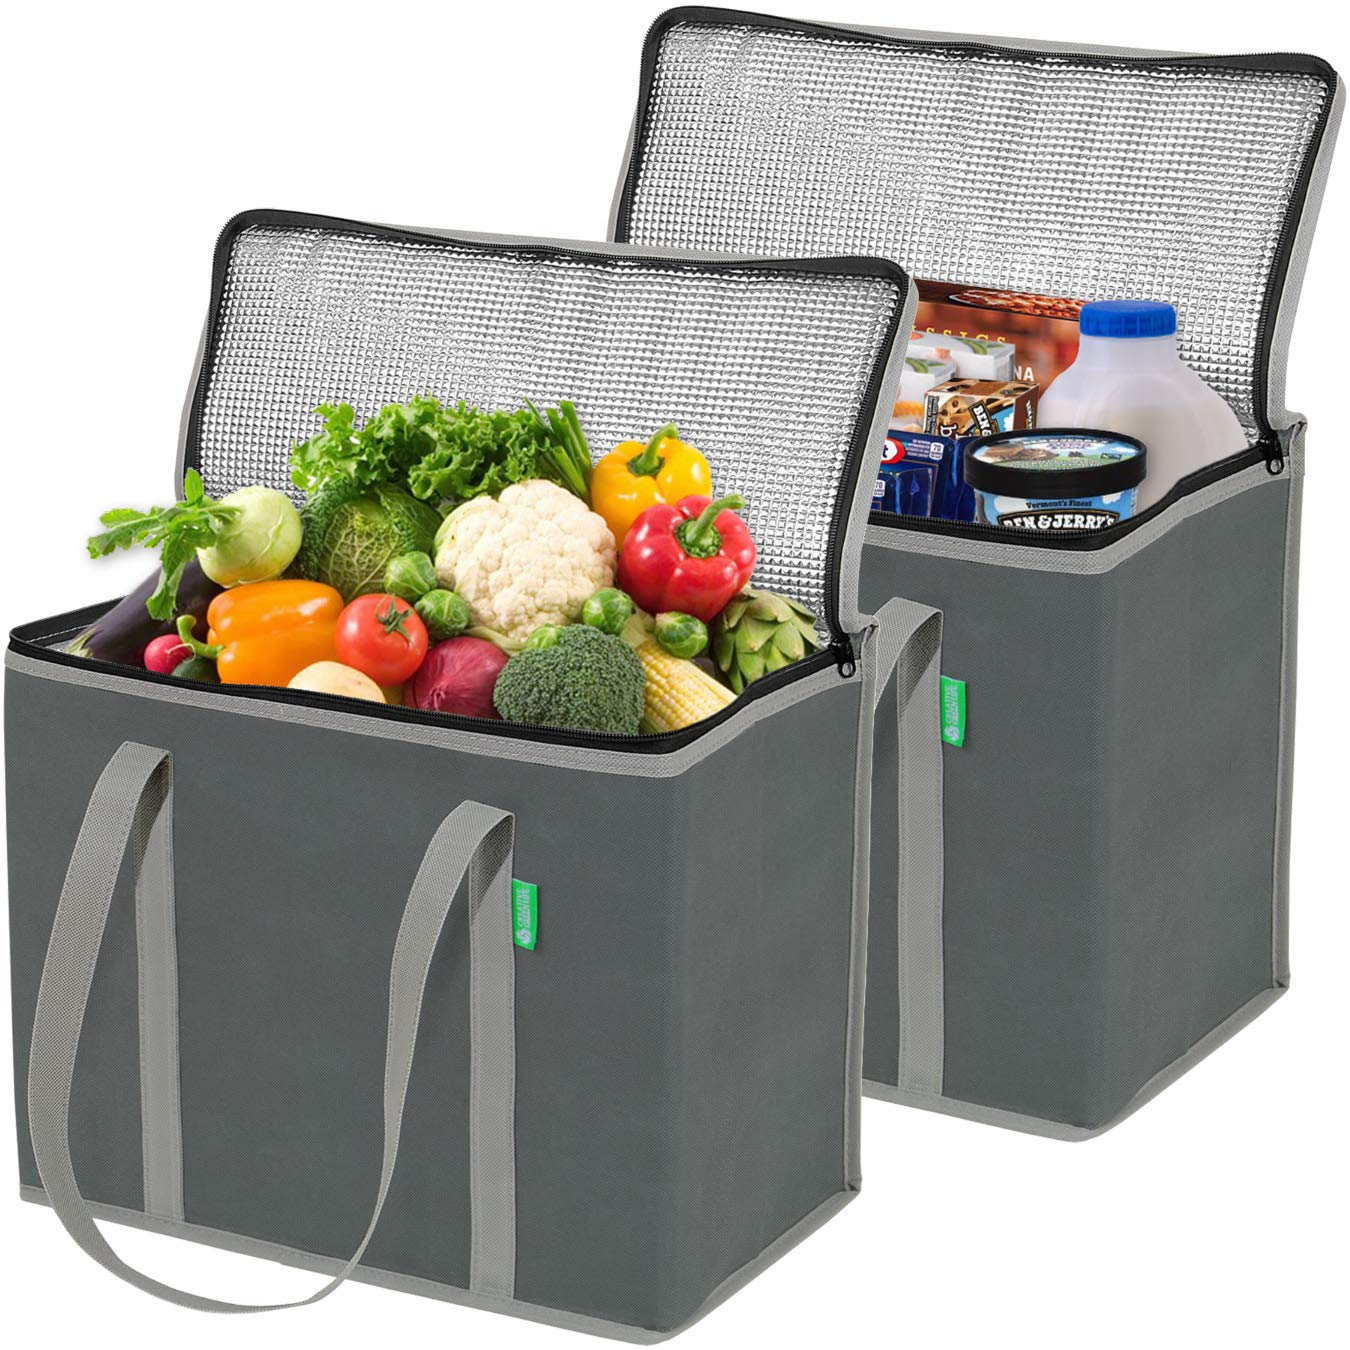 Insulated Reusable Grocery Bags (Upgraded), 2-Pack Gray, X-Large, Premium Quality Cooler Bag with Long Handles and Zipper Top. Insulated Bag for Warm or Cold Food, Freezer Items, Shopping, Delivery